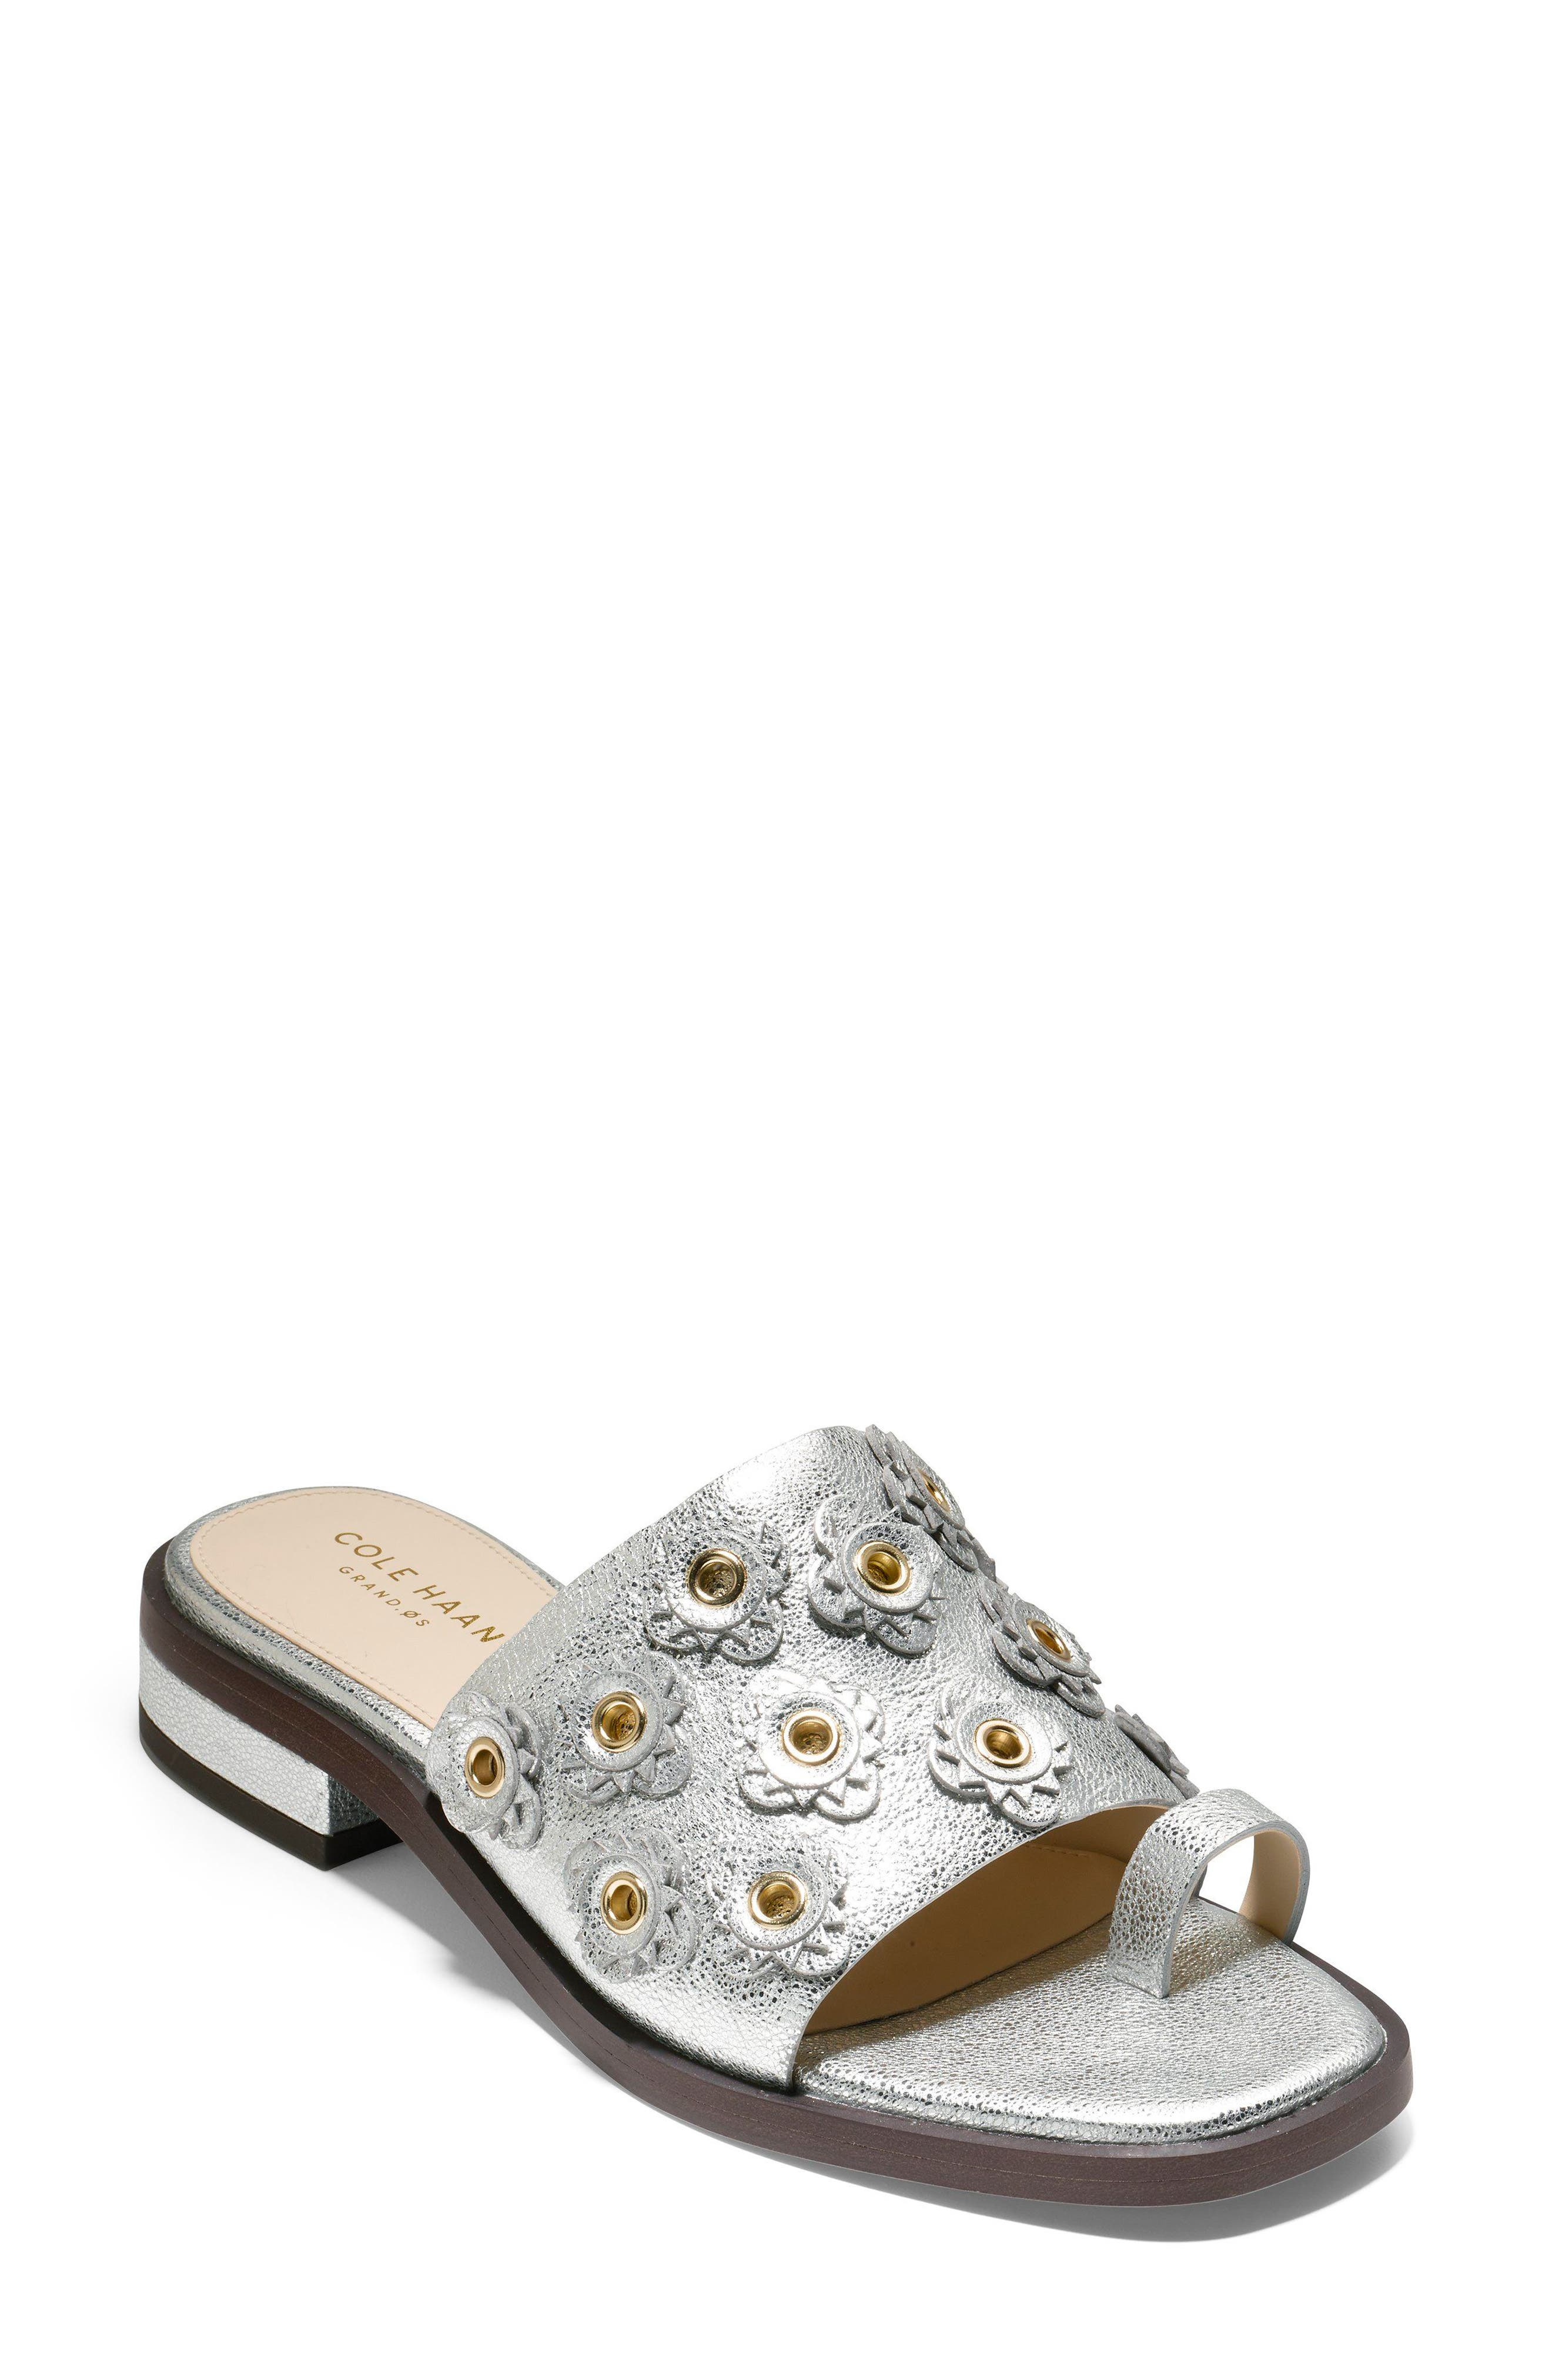 Carly Floral Sandal,                         Main,                         color, SILVER METALLIC LEATHER